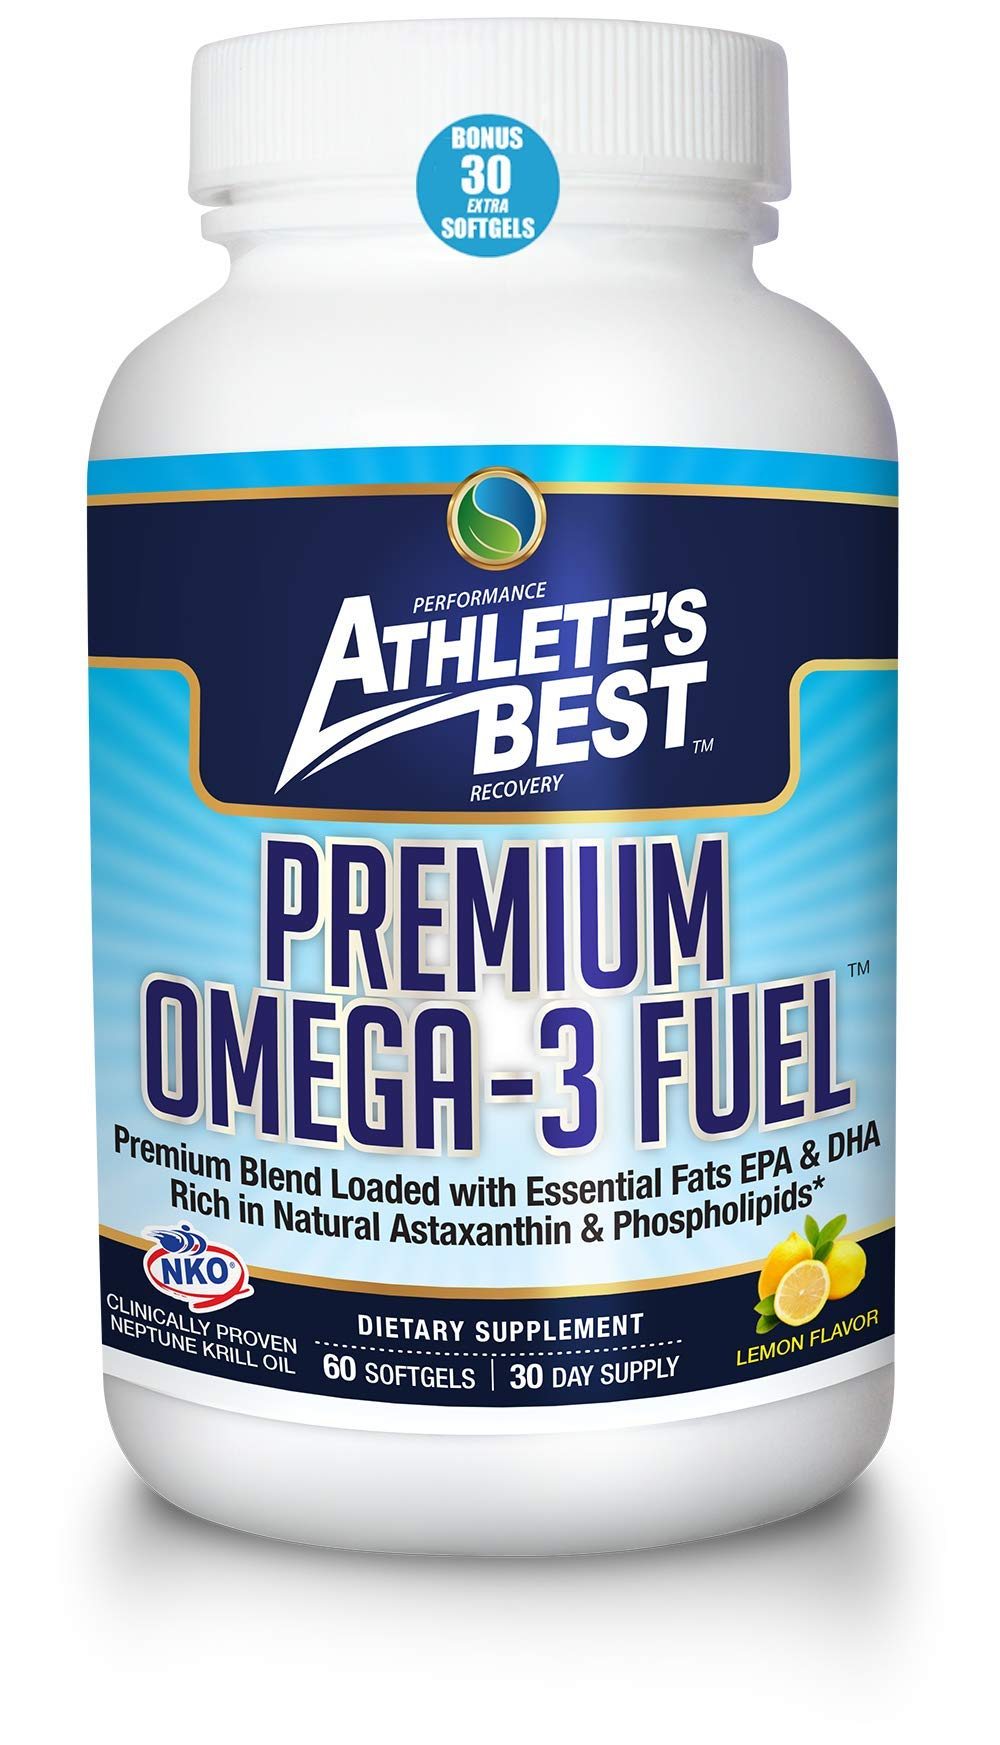 ATHLETE'S BEST Premium Omega-3 Fuel Supplement | 2400mg Krill Oil-Astaxanthin-Calamarine-Vitamin D3 | EPA+DHA Omega 3s | Highest Quality & Clinically Proven Ingredients